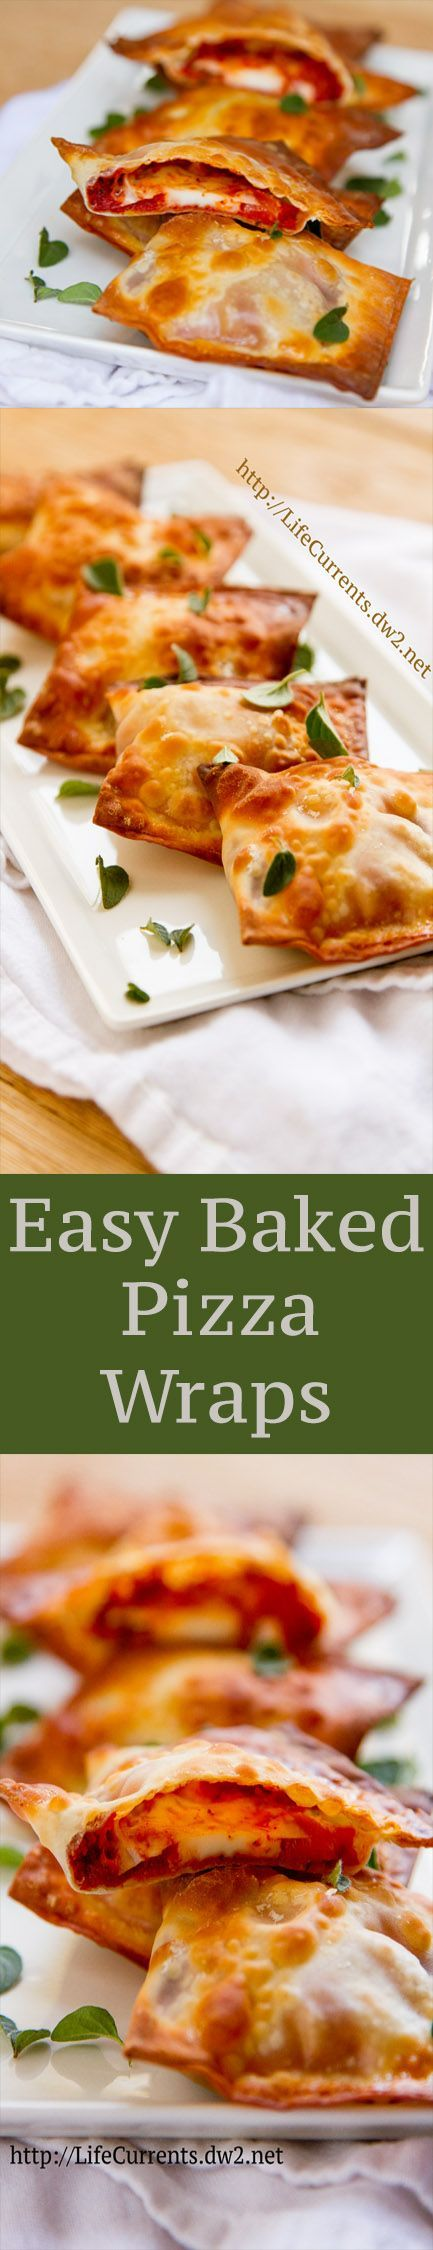 Easy Baked Pizza Wraps  ... These make a great after-school or after-work snack. They'd also be great on any tailgating or football party spread, or any appetizer snack menu.